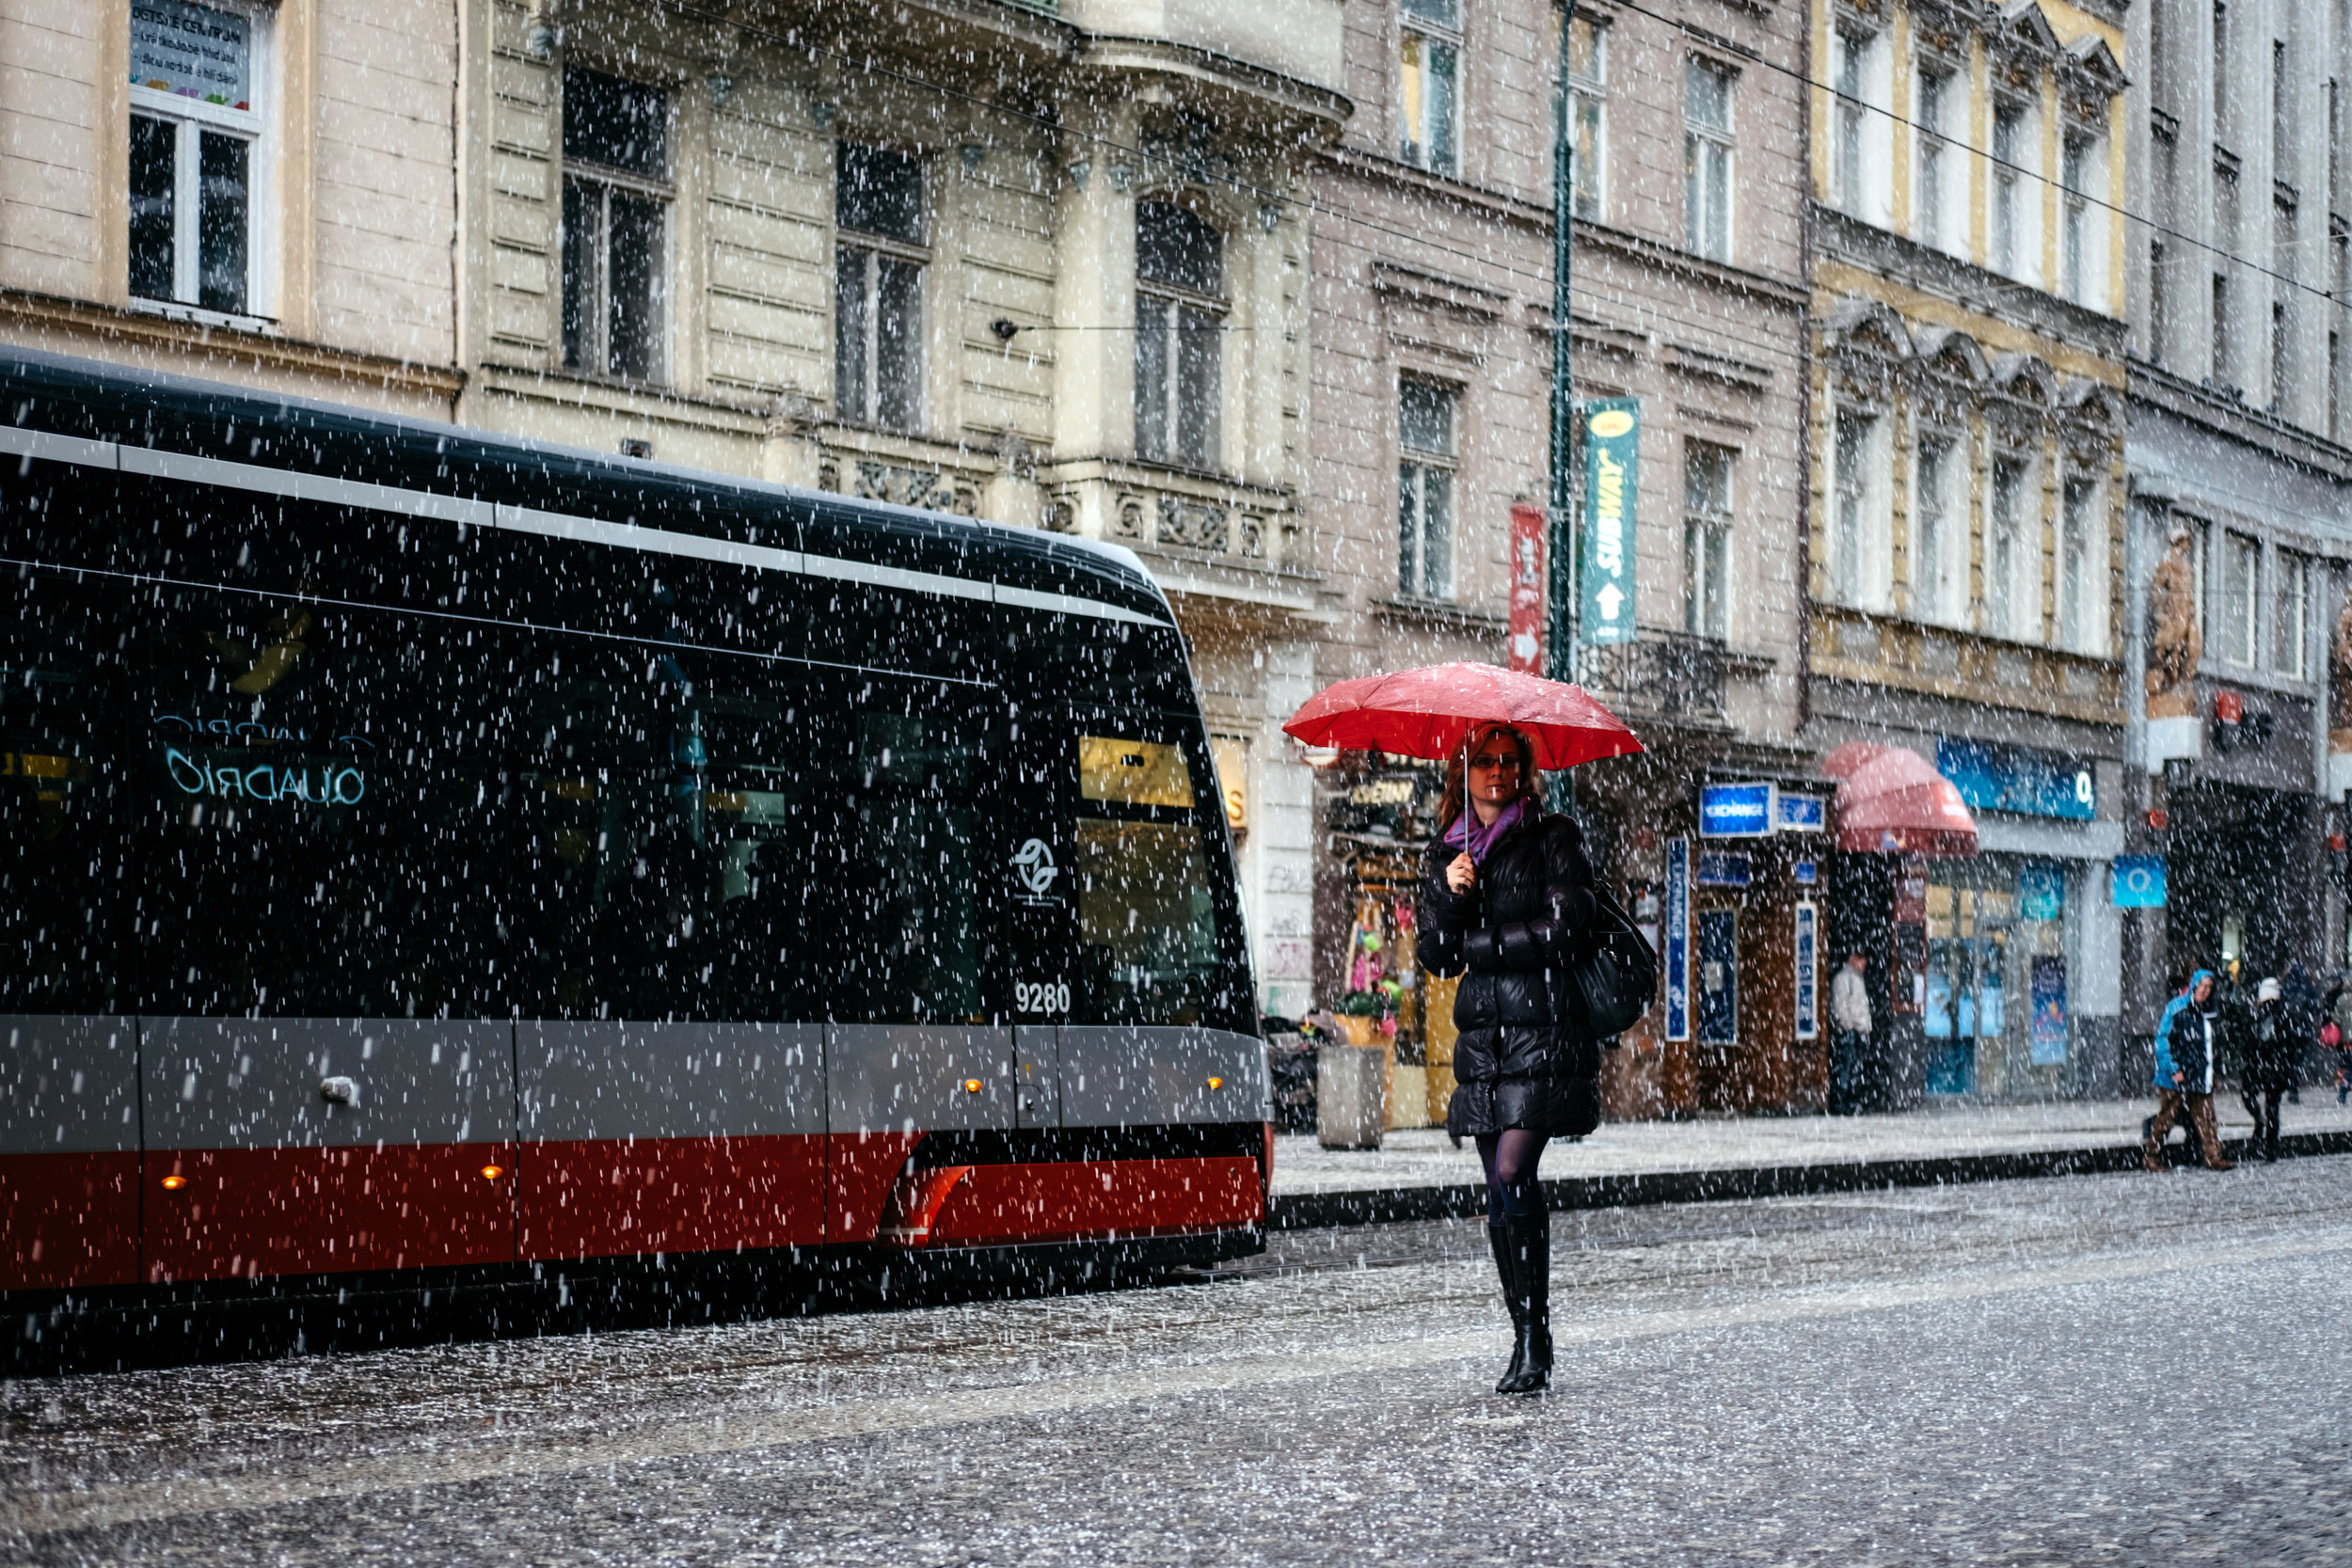 Prague Tram and a woman crossing the street with an umbrella